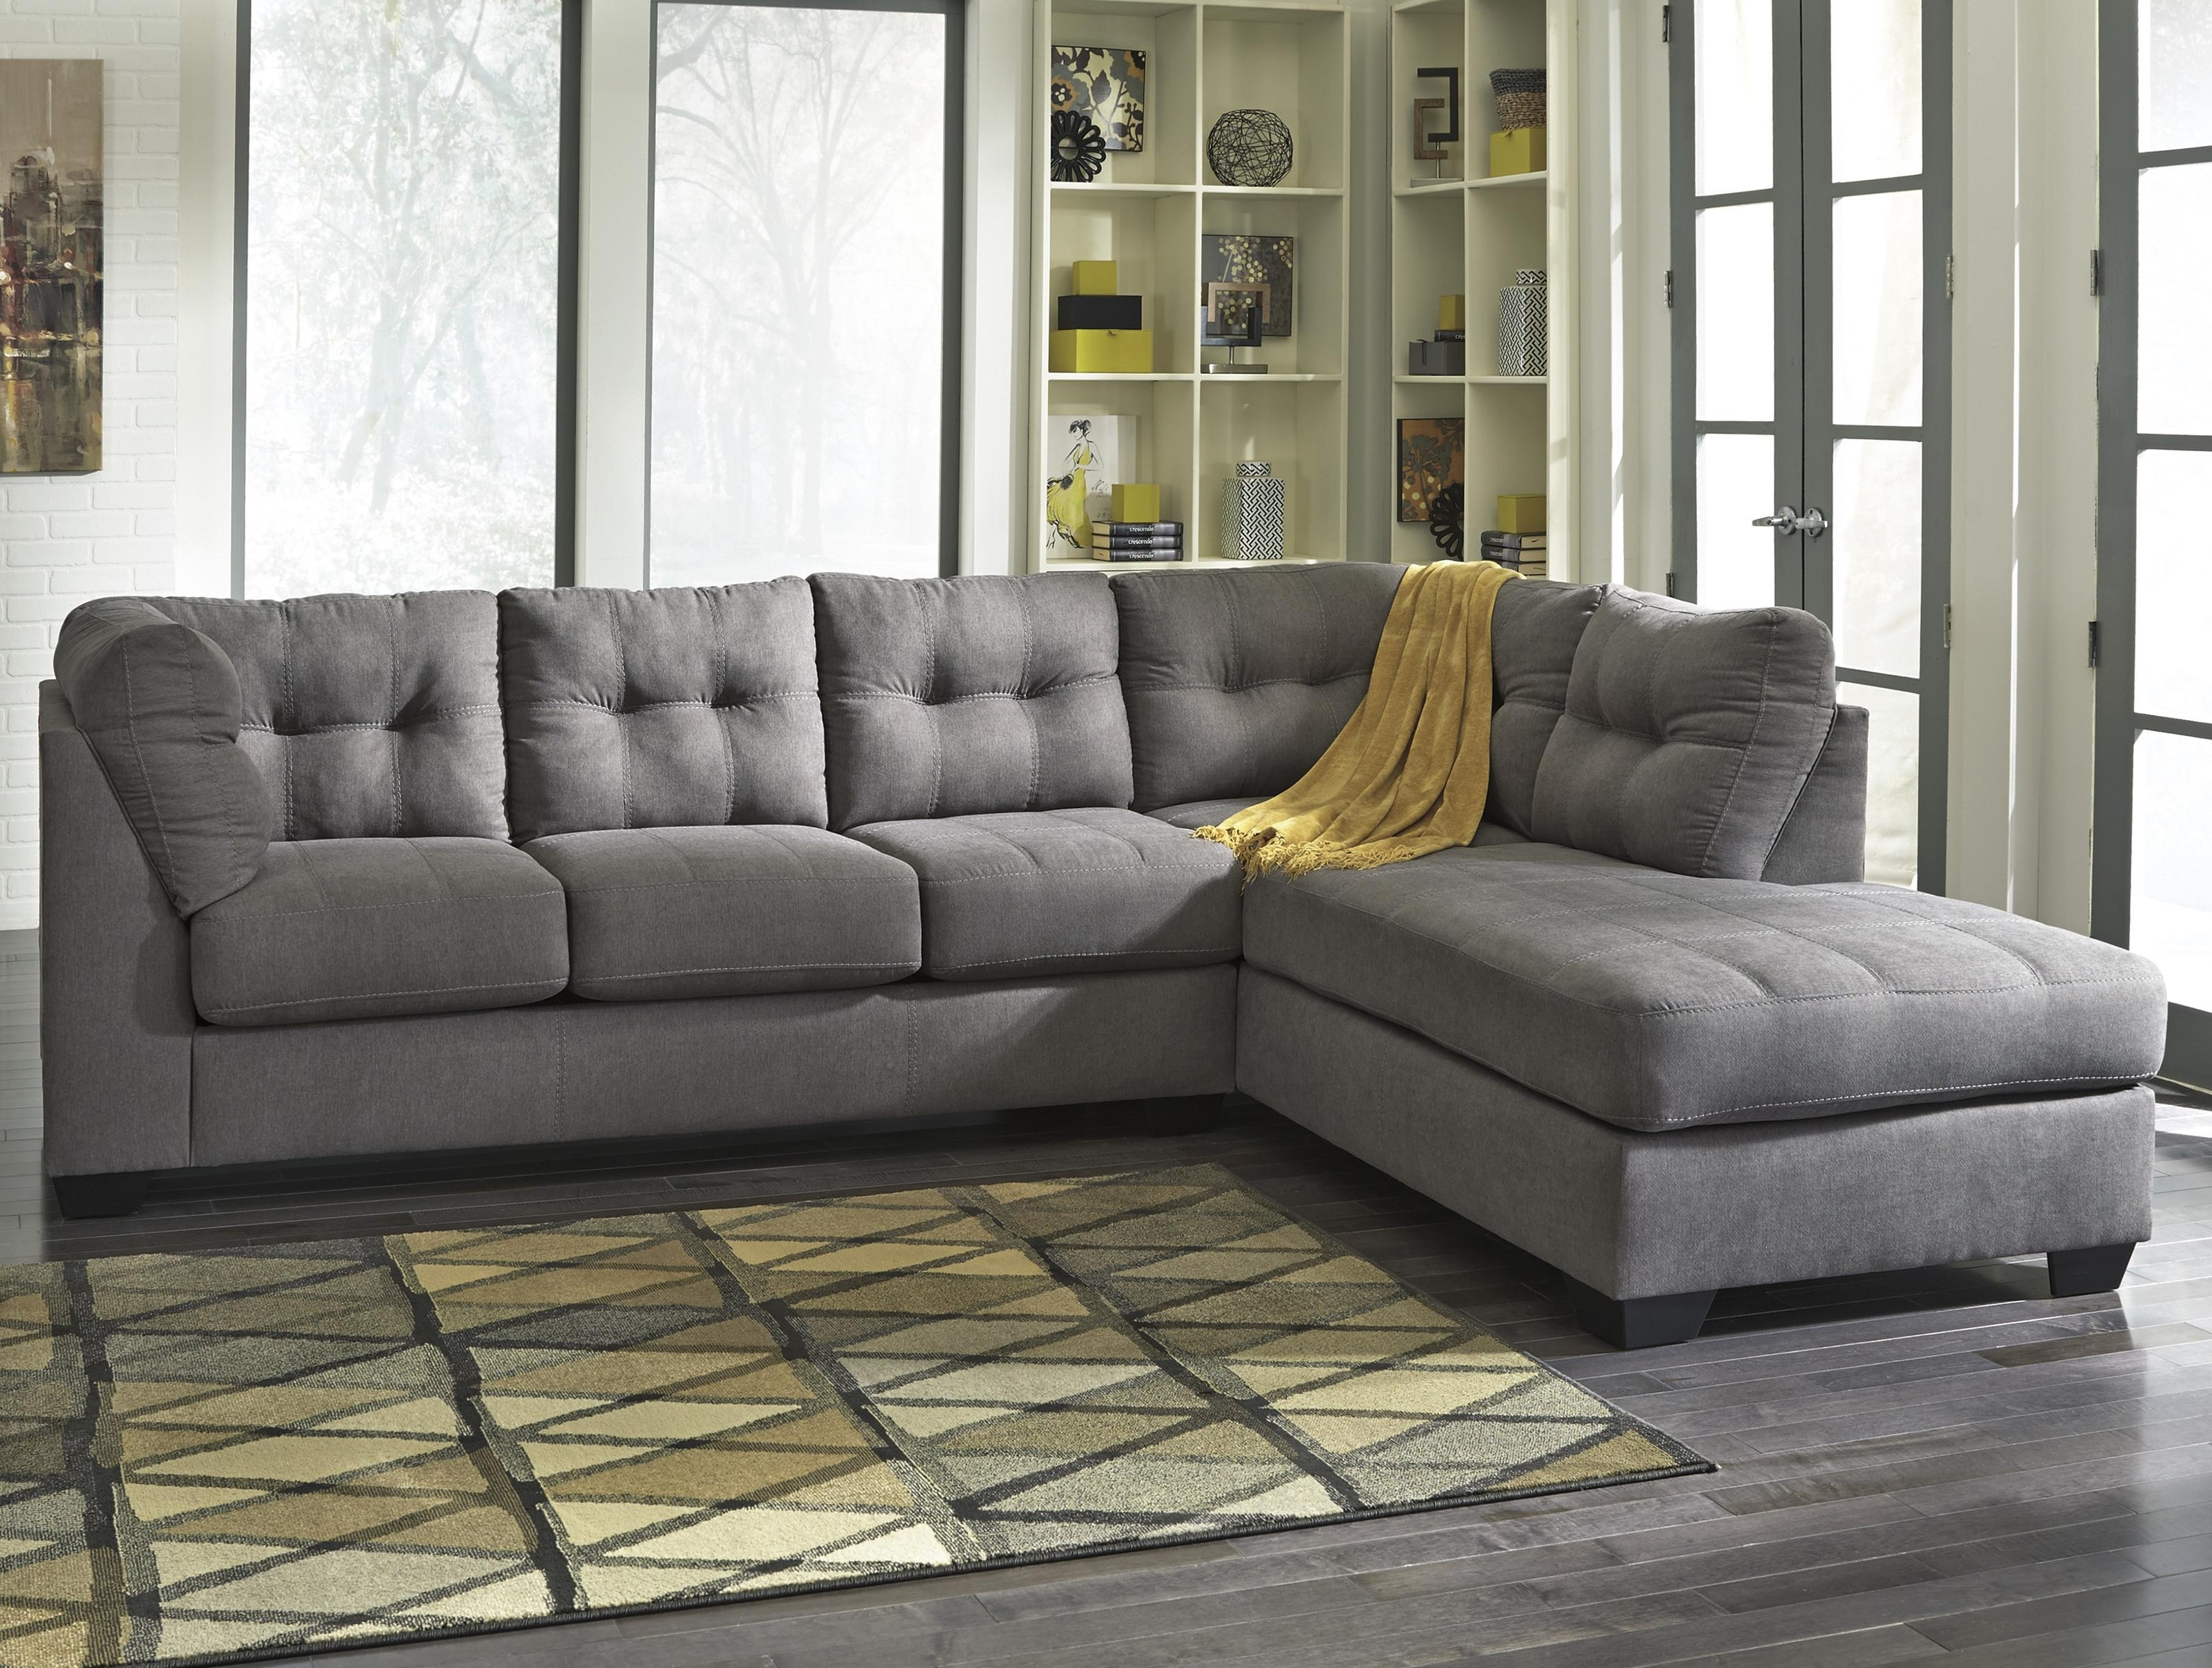 Benchcraft Maier – Charcoal 2 Piece Sectional W/ Sleeper Sofa With Regard To Well Known Sectional Sleeper Sofas With Chaise (View 11 of 20)